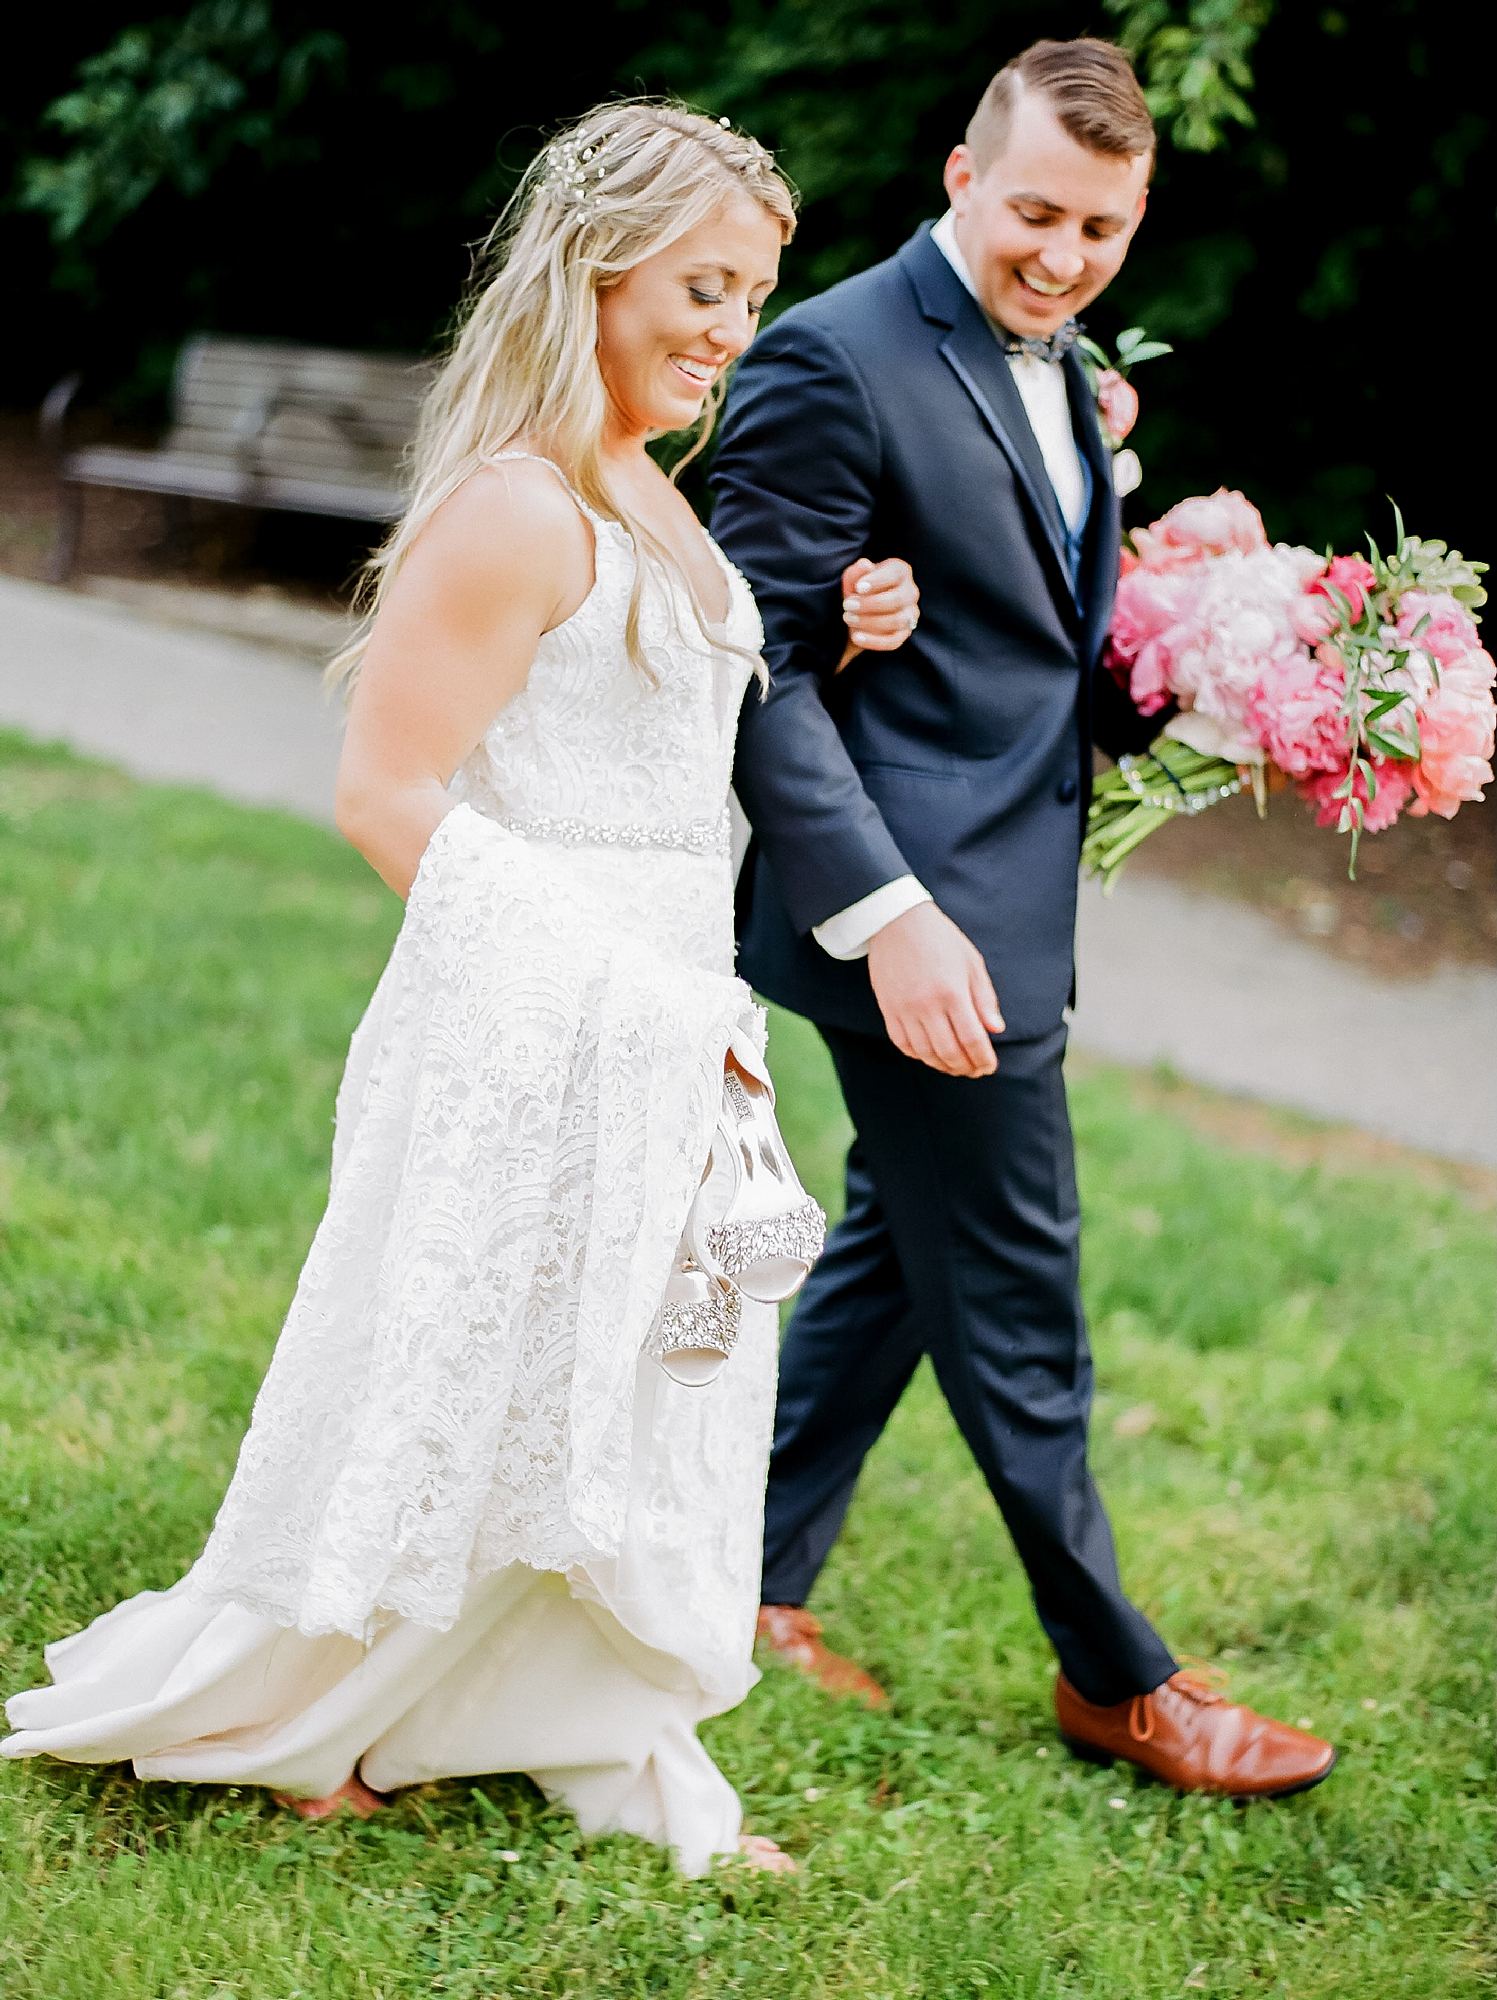 Candid and Genuine Fairmount Waterworks Philadelphia Wedding Photography by Magdalena Studios 0057 1